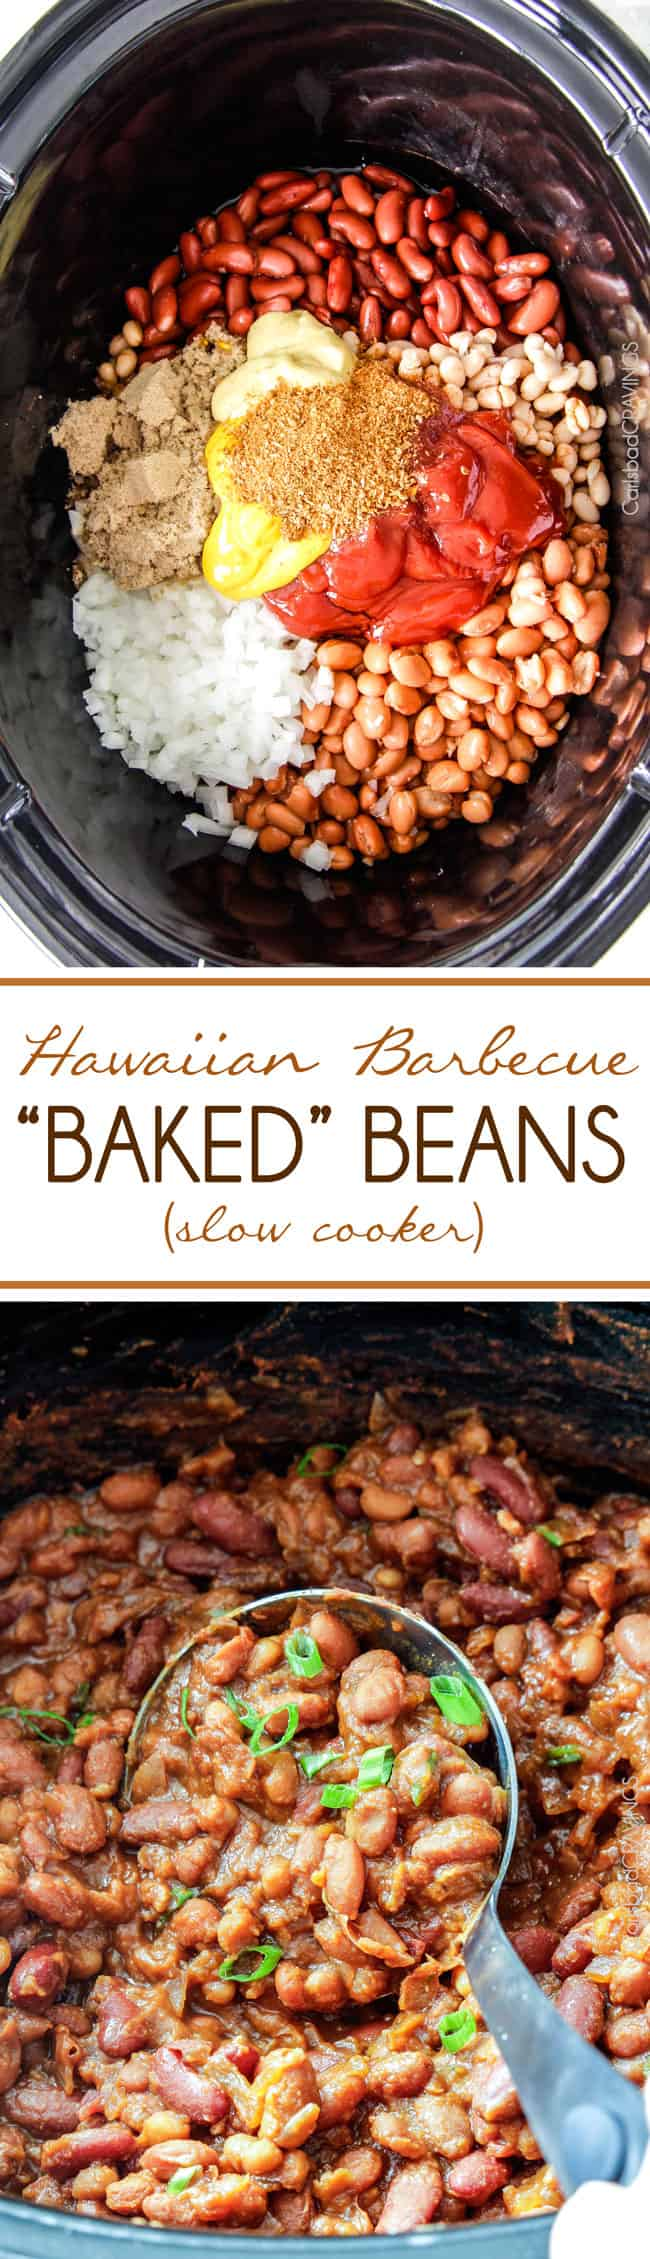 """Slow Cooker Hawaiian Barbecue """"Baked"""" Beans simmered in a pineapple..."""